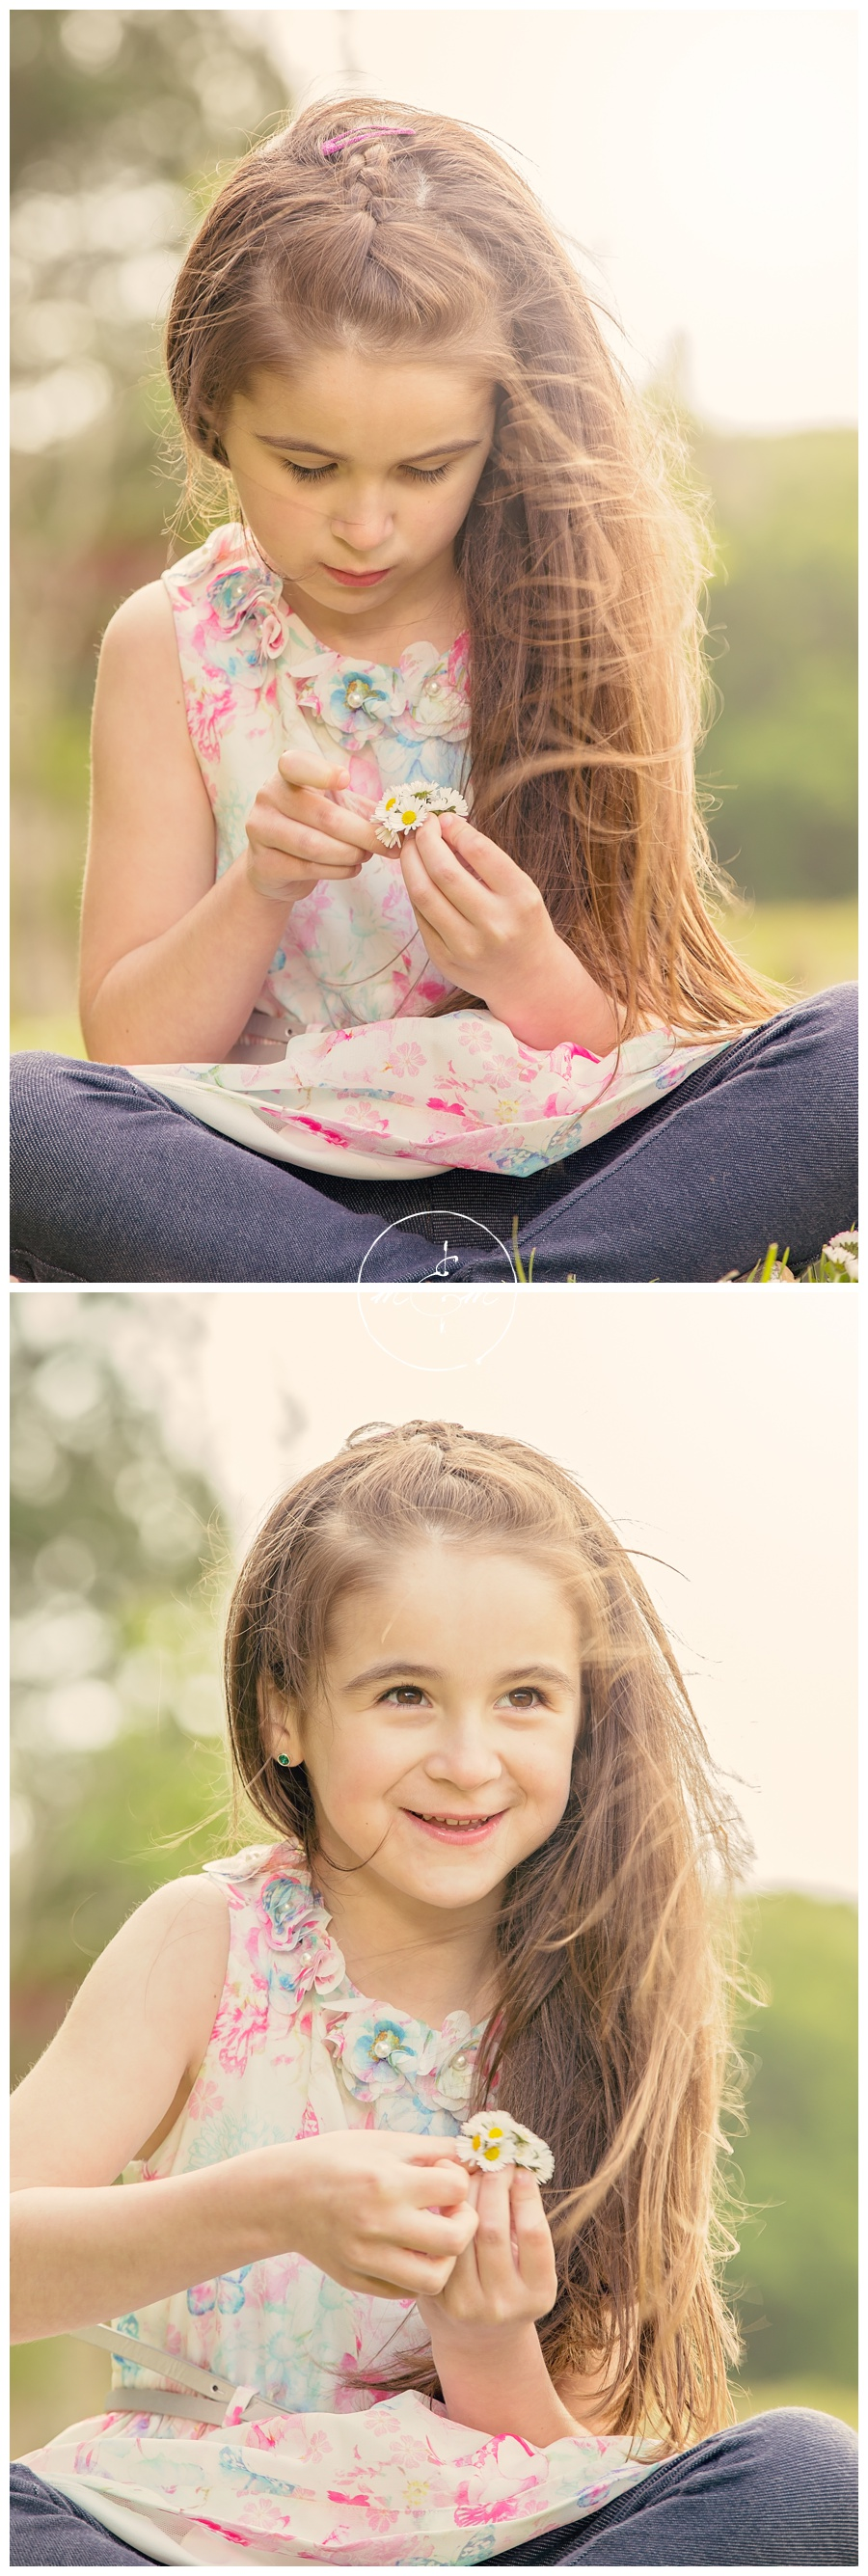 Arundel-Natural-Childrens-Photography-Millie-And-Max-Horsham-West-Sussex-Photographer